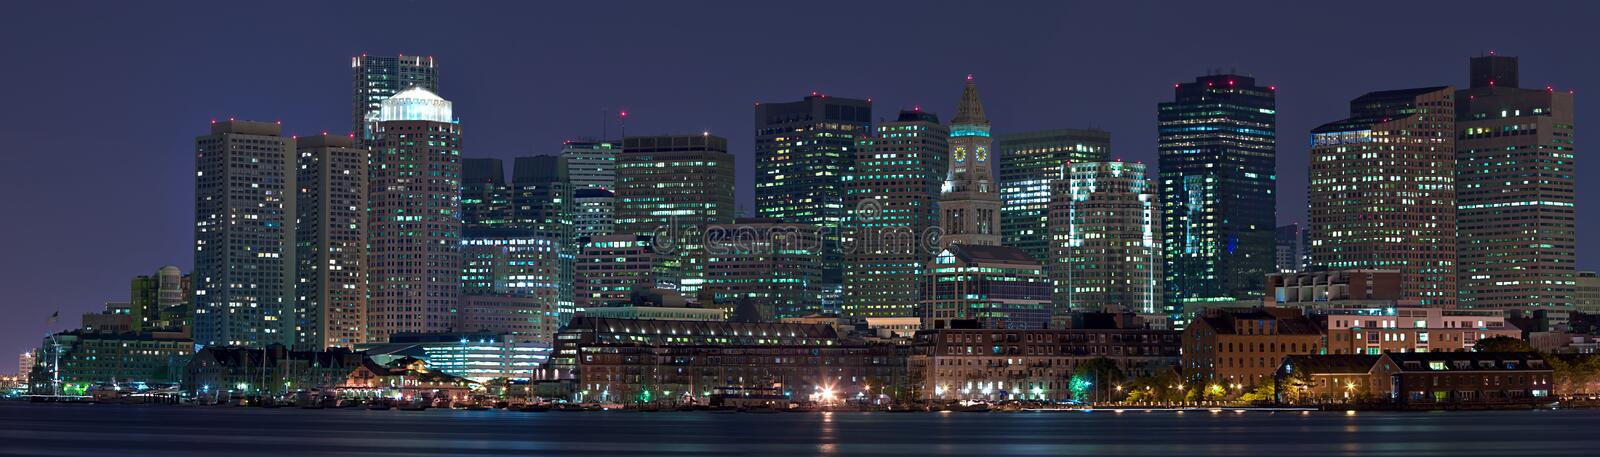 Boston-Panorama lizenzfreies stockfoto